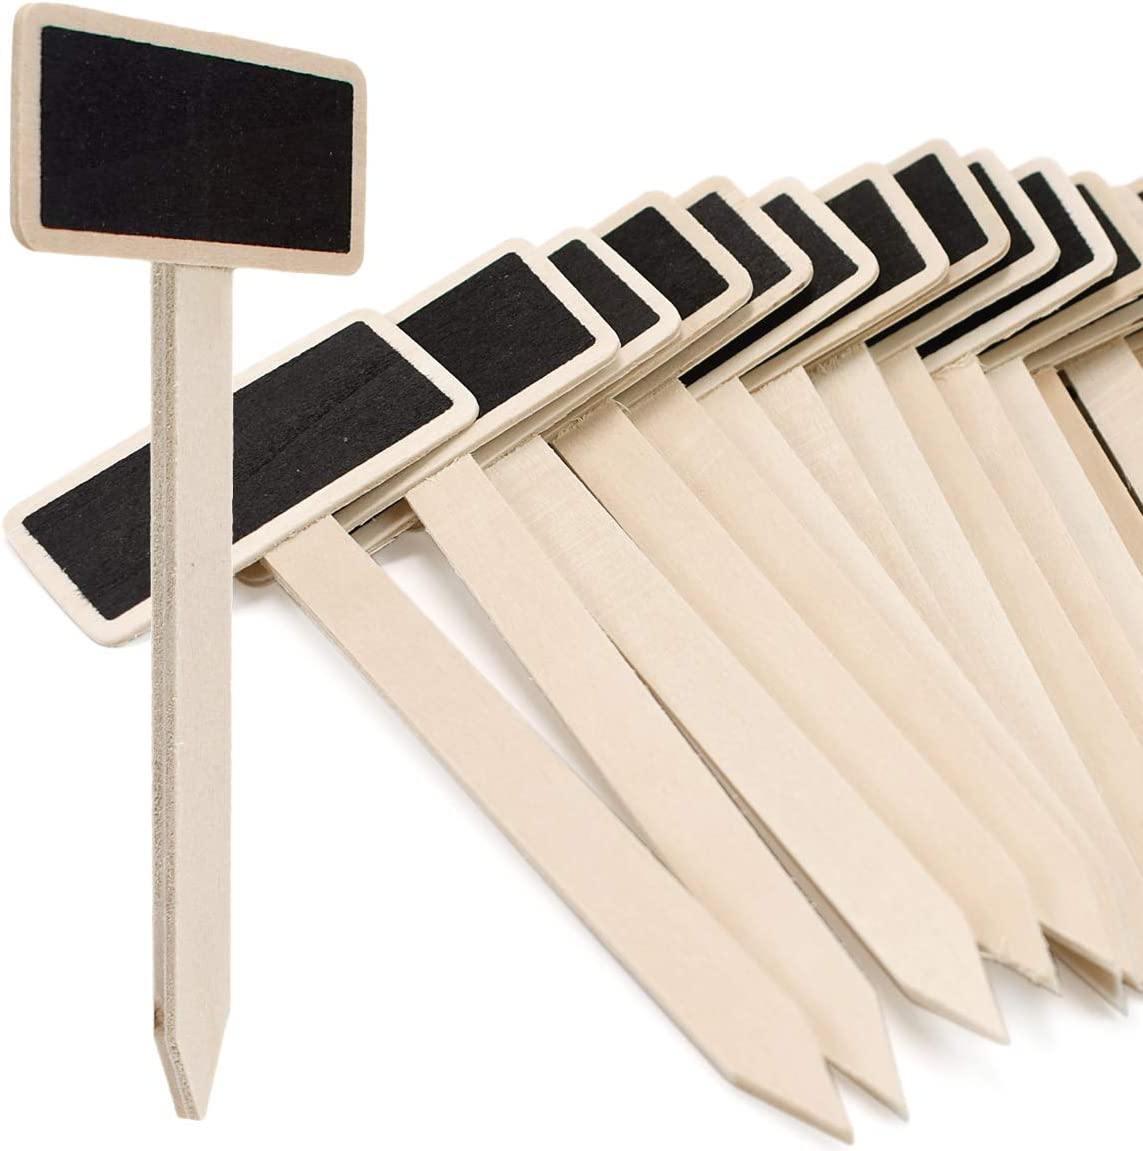 ZIIYAN 20pcs Mini Wood Chalkboard Stakes, Wooden Garden Plant Markers Tag Labels